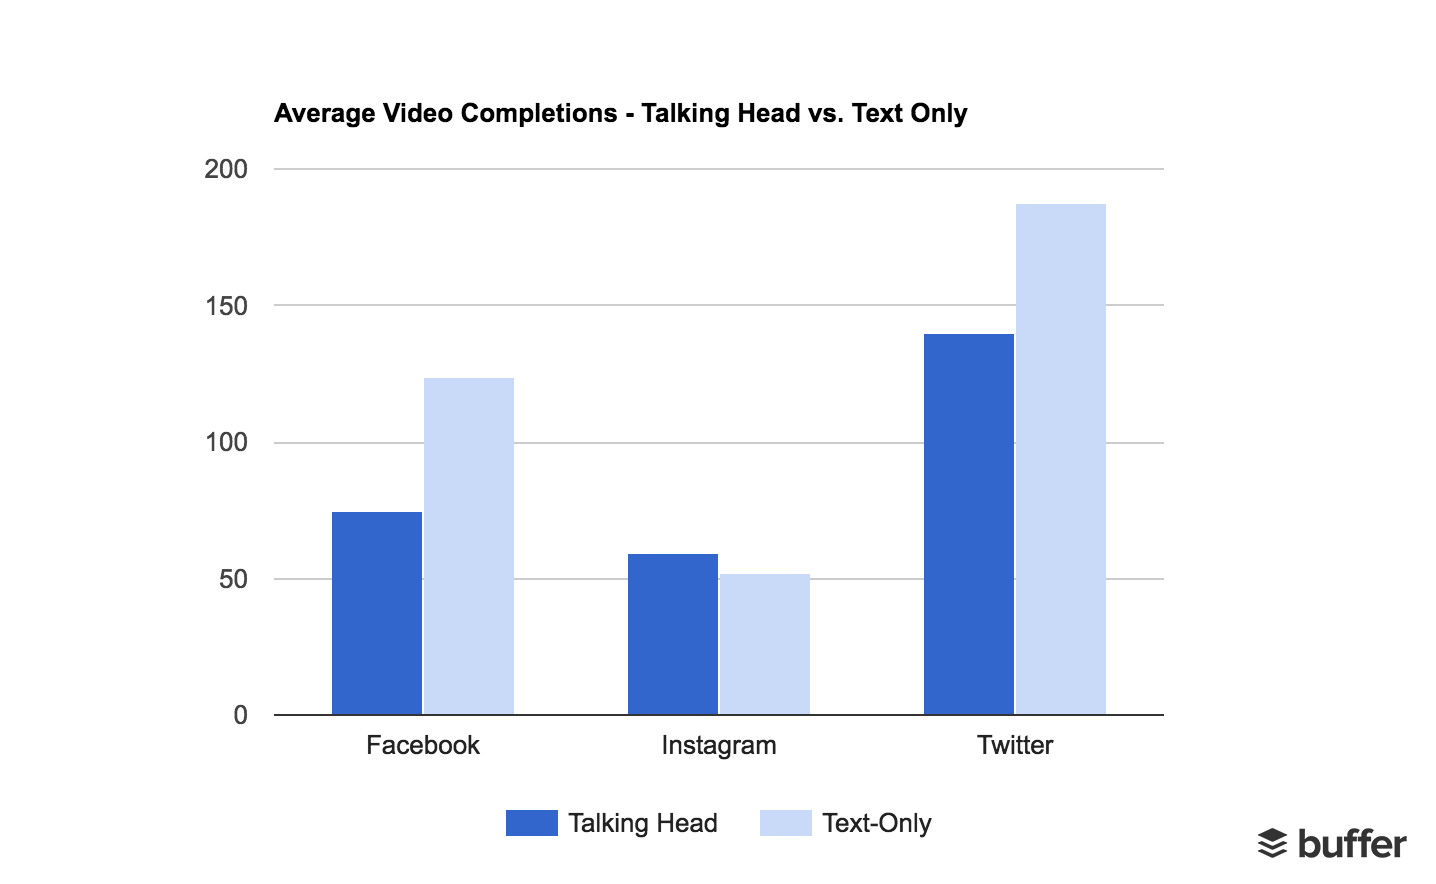 Average Video Completions - Talking Head vs. Text Only